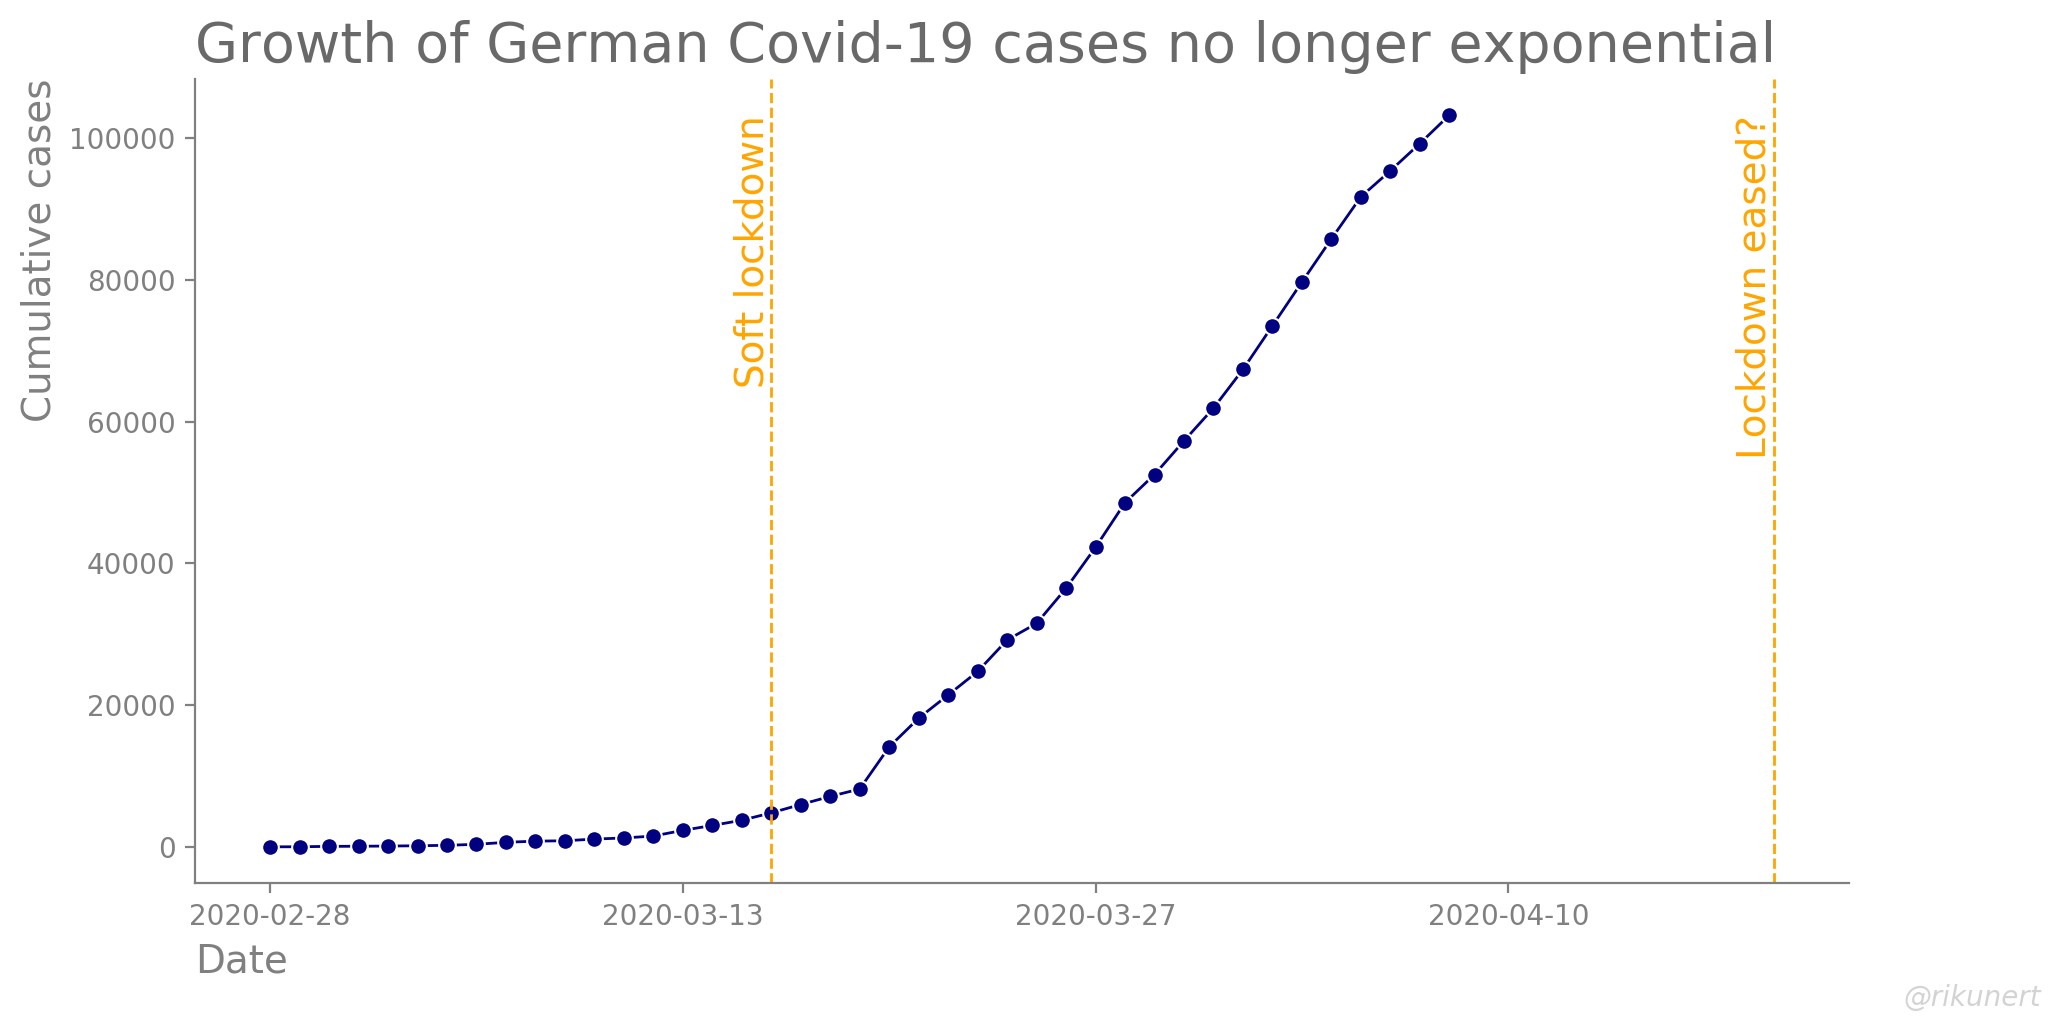 Development of total Covid-19 cases over time in Germany